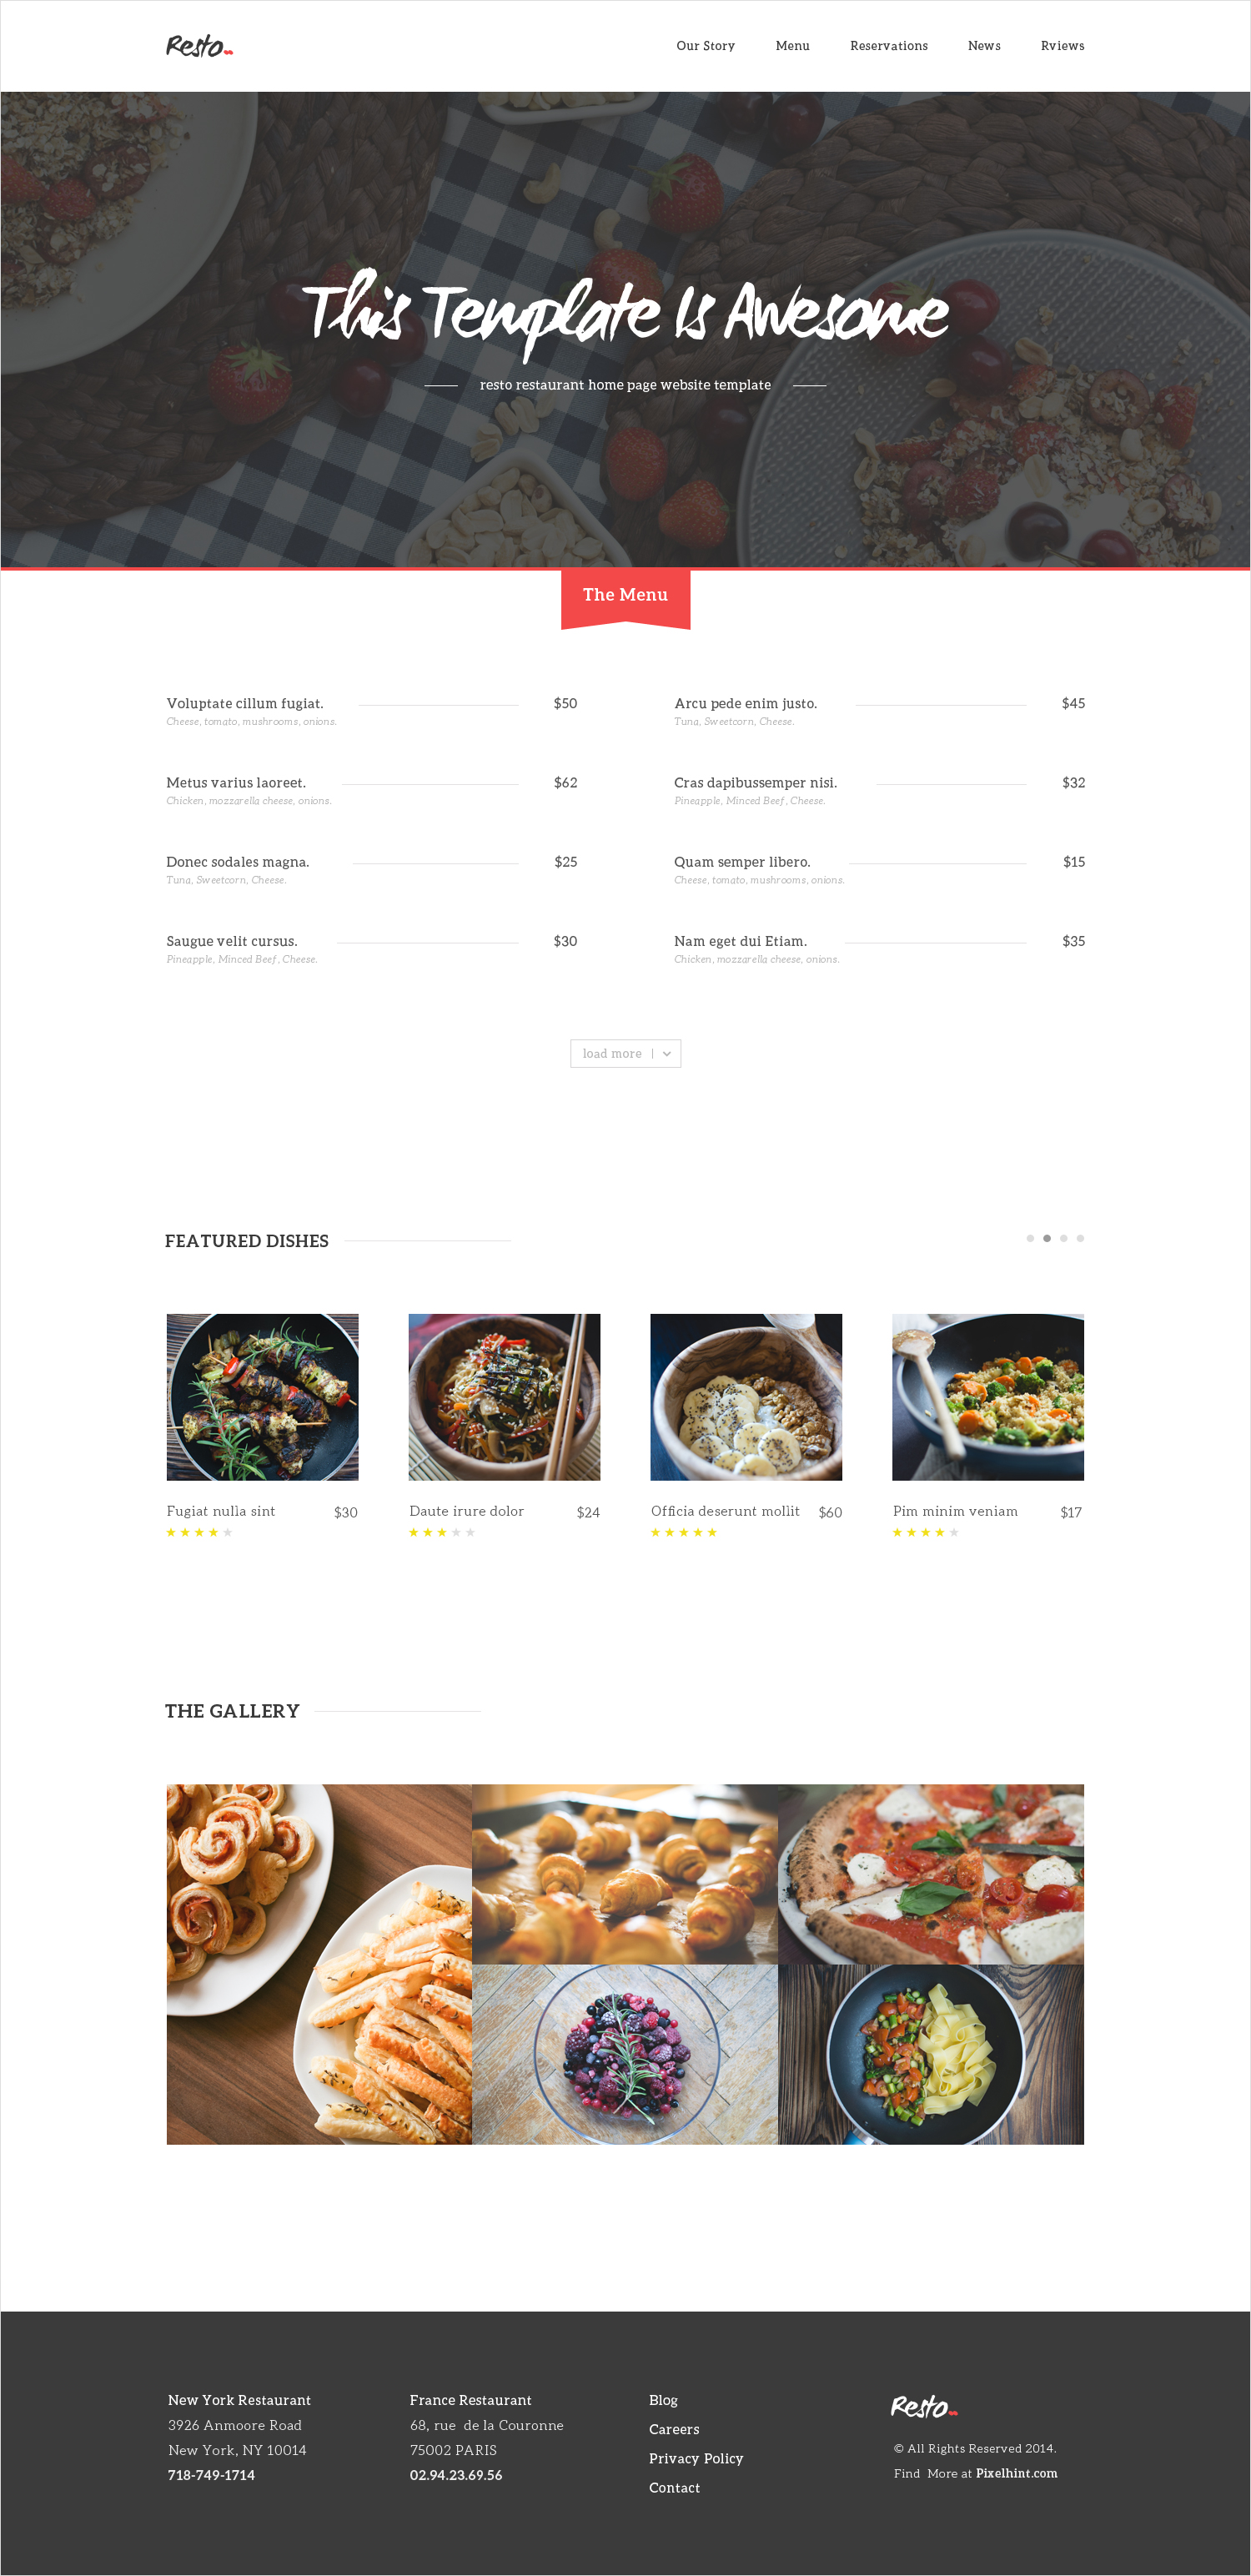 40 Restaurant templates suitable for professional business! | Free ...